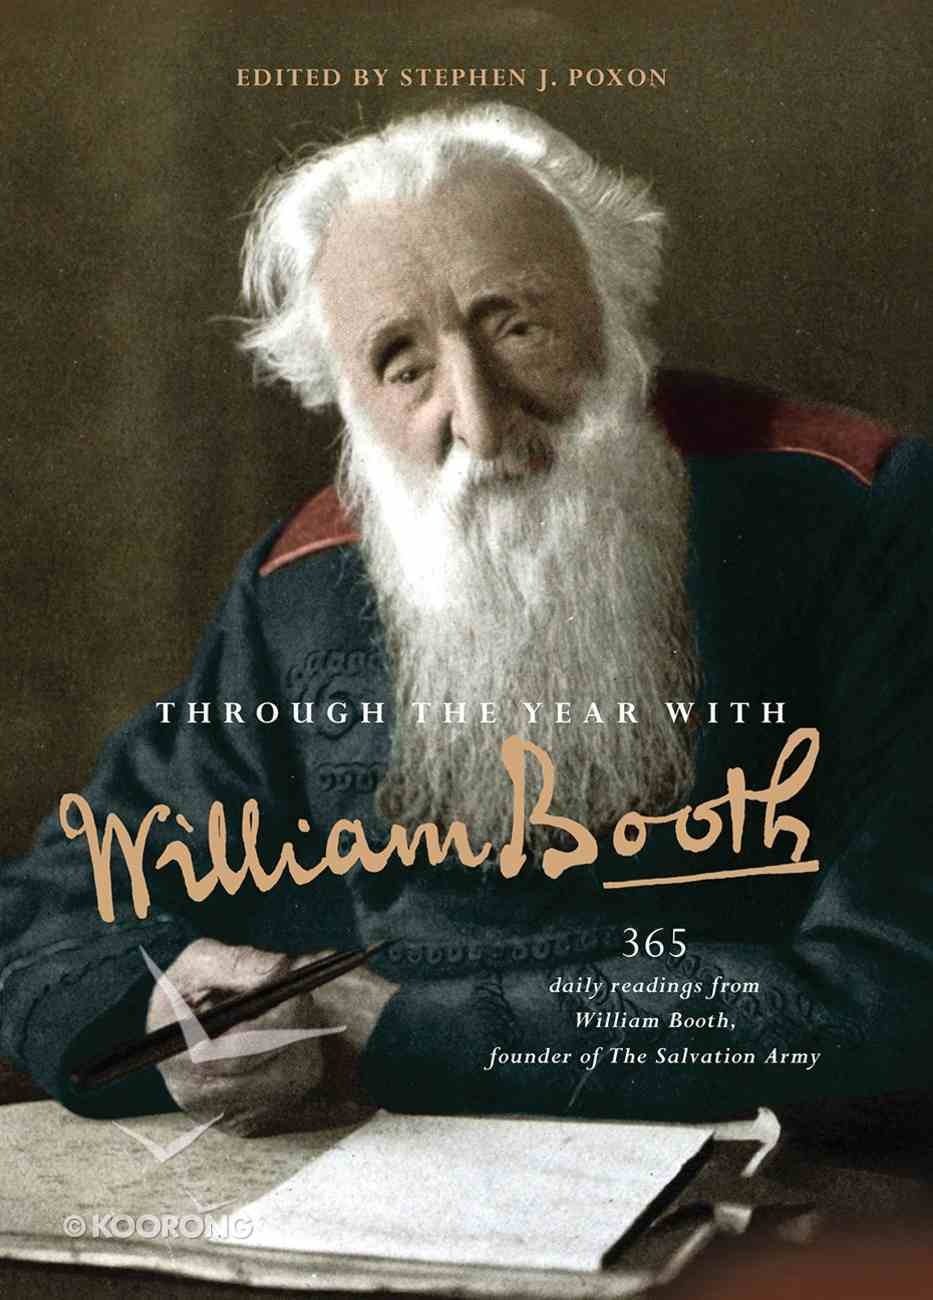 Through the Year With William Booth: 365 Daily Readings From William Booth, Founder of the Salvation Army Paperback